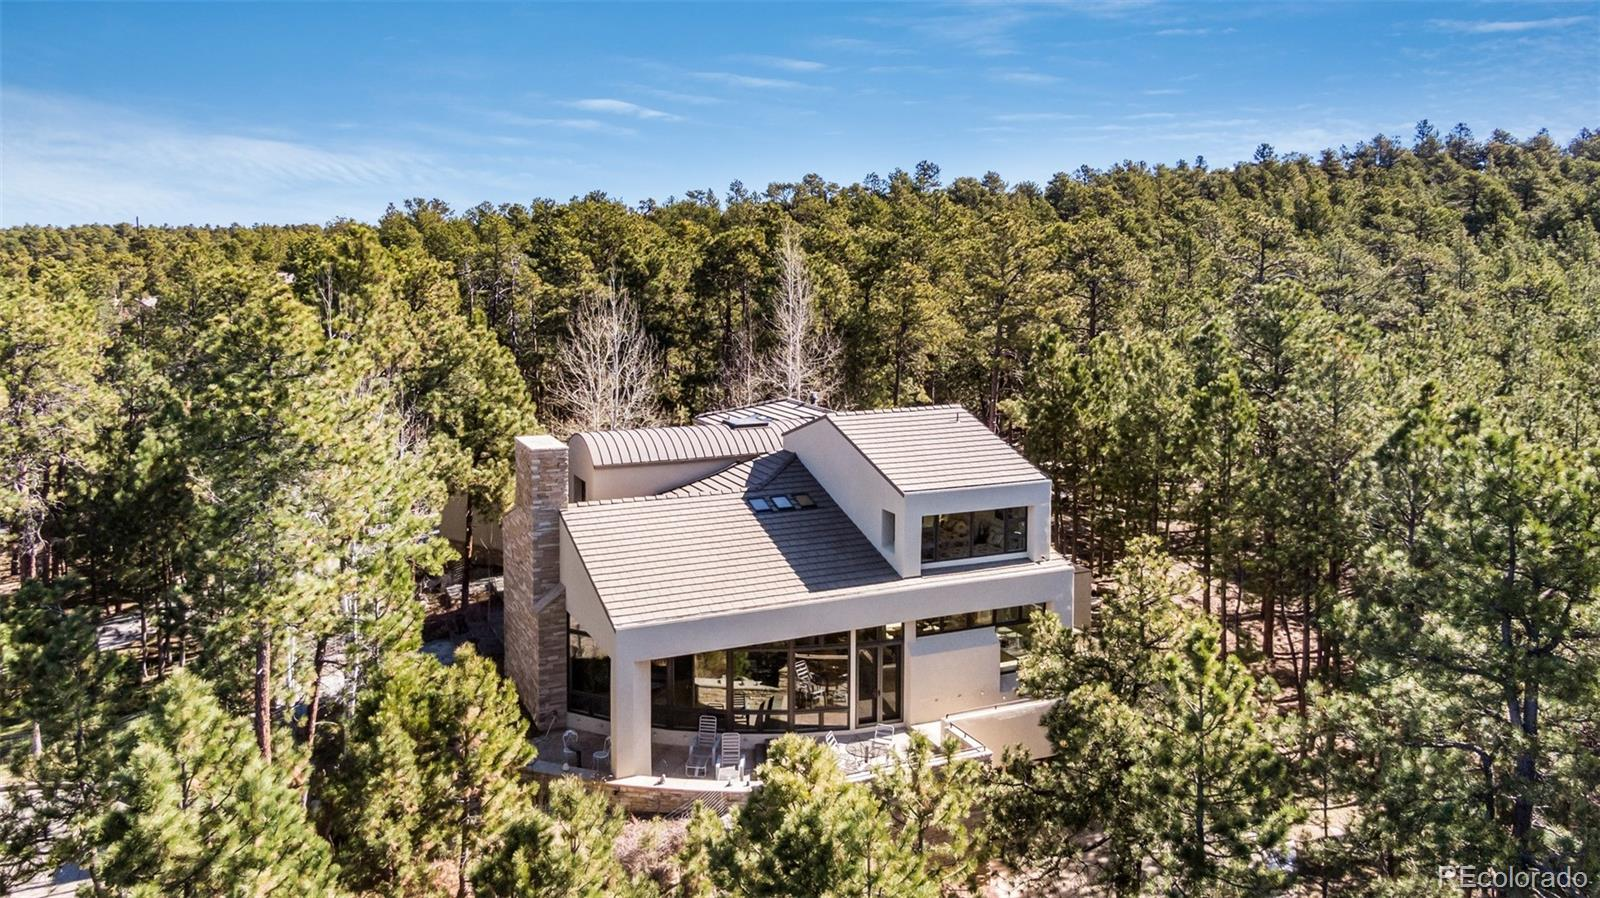 Situated at the end of a cul-de-sac, surrounded by 5 acres of Ponderosa pines and stunning views of Pikes Peak, this 6,276 sq. ft. custom home's inspired architecture blends modern and rustic elements to bring the outdoors in. Craftsmanship and award winning design present in every detail of this 4 bd, 5 ba home. Open concept living with vaulted ceiling, stone fireplace, wall of windows with views of Pikes Peak. Custom eat-in kitchen complete with Ash cabinetry, double oven, convection oven, pantry, island with breakfast bar. Formal dining room boasts a fireplace and built-ins. Second story master retreat includes two sitting areas, see-through fire, five piece bath, and endless views. Walk-out basement has large family room, gym, and 3 additional bedrooms and baths. Perfect for entertaining or relaxing, outdoor seating areas are present on all three levels including wrap around patio with fireplace on main level. 10+ acres of total privacy to the east. Low heating and utility costs, low taxes, and a tiny HOA fee. This spectacular home is only minutes from 1-25, but feels a world away.